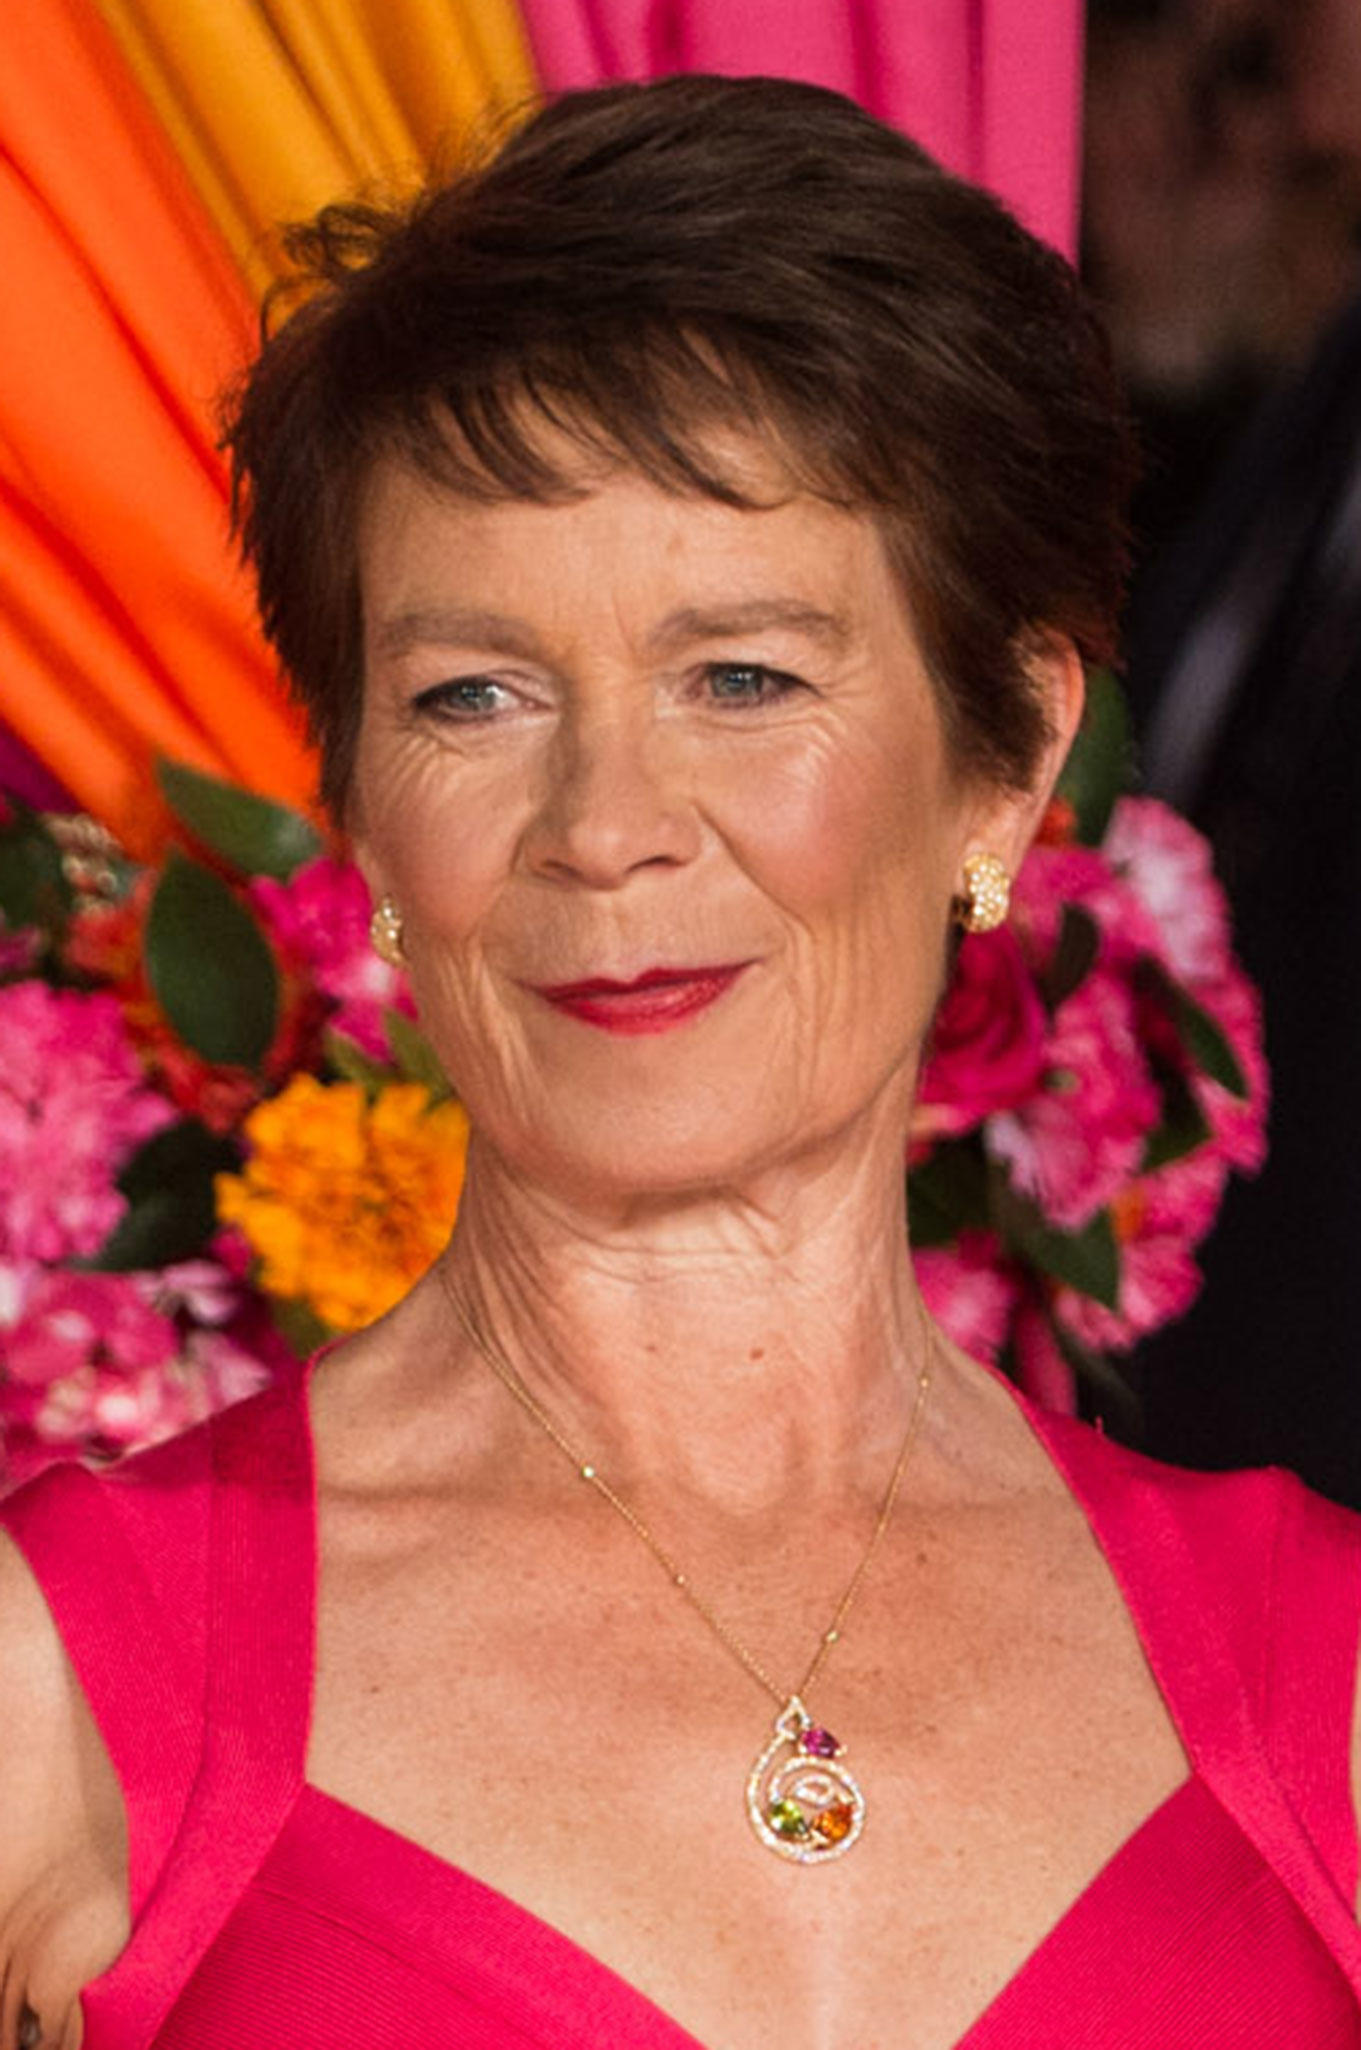 Celia Imrie at the London premiere of